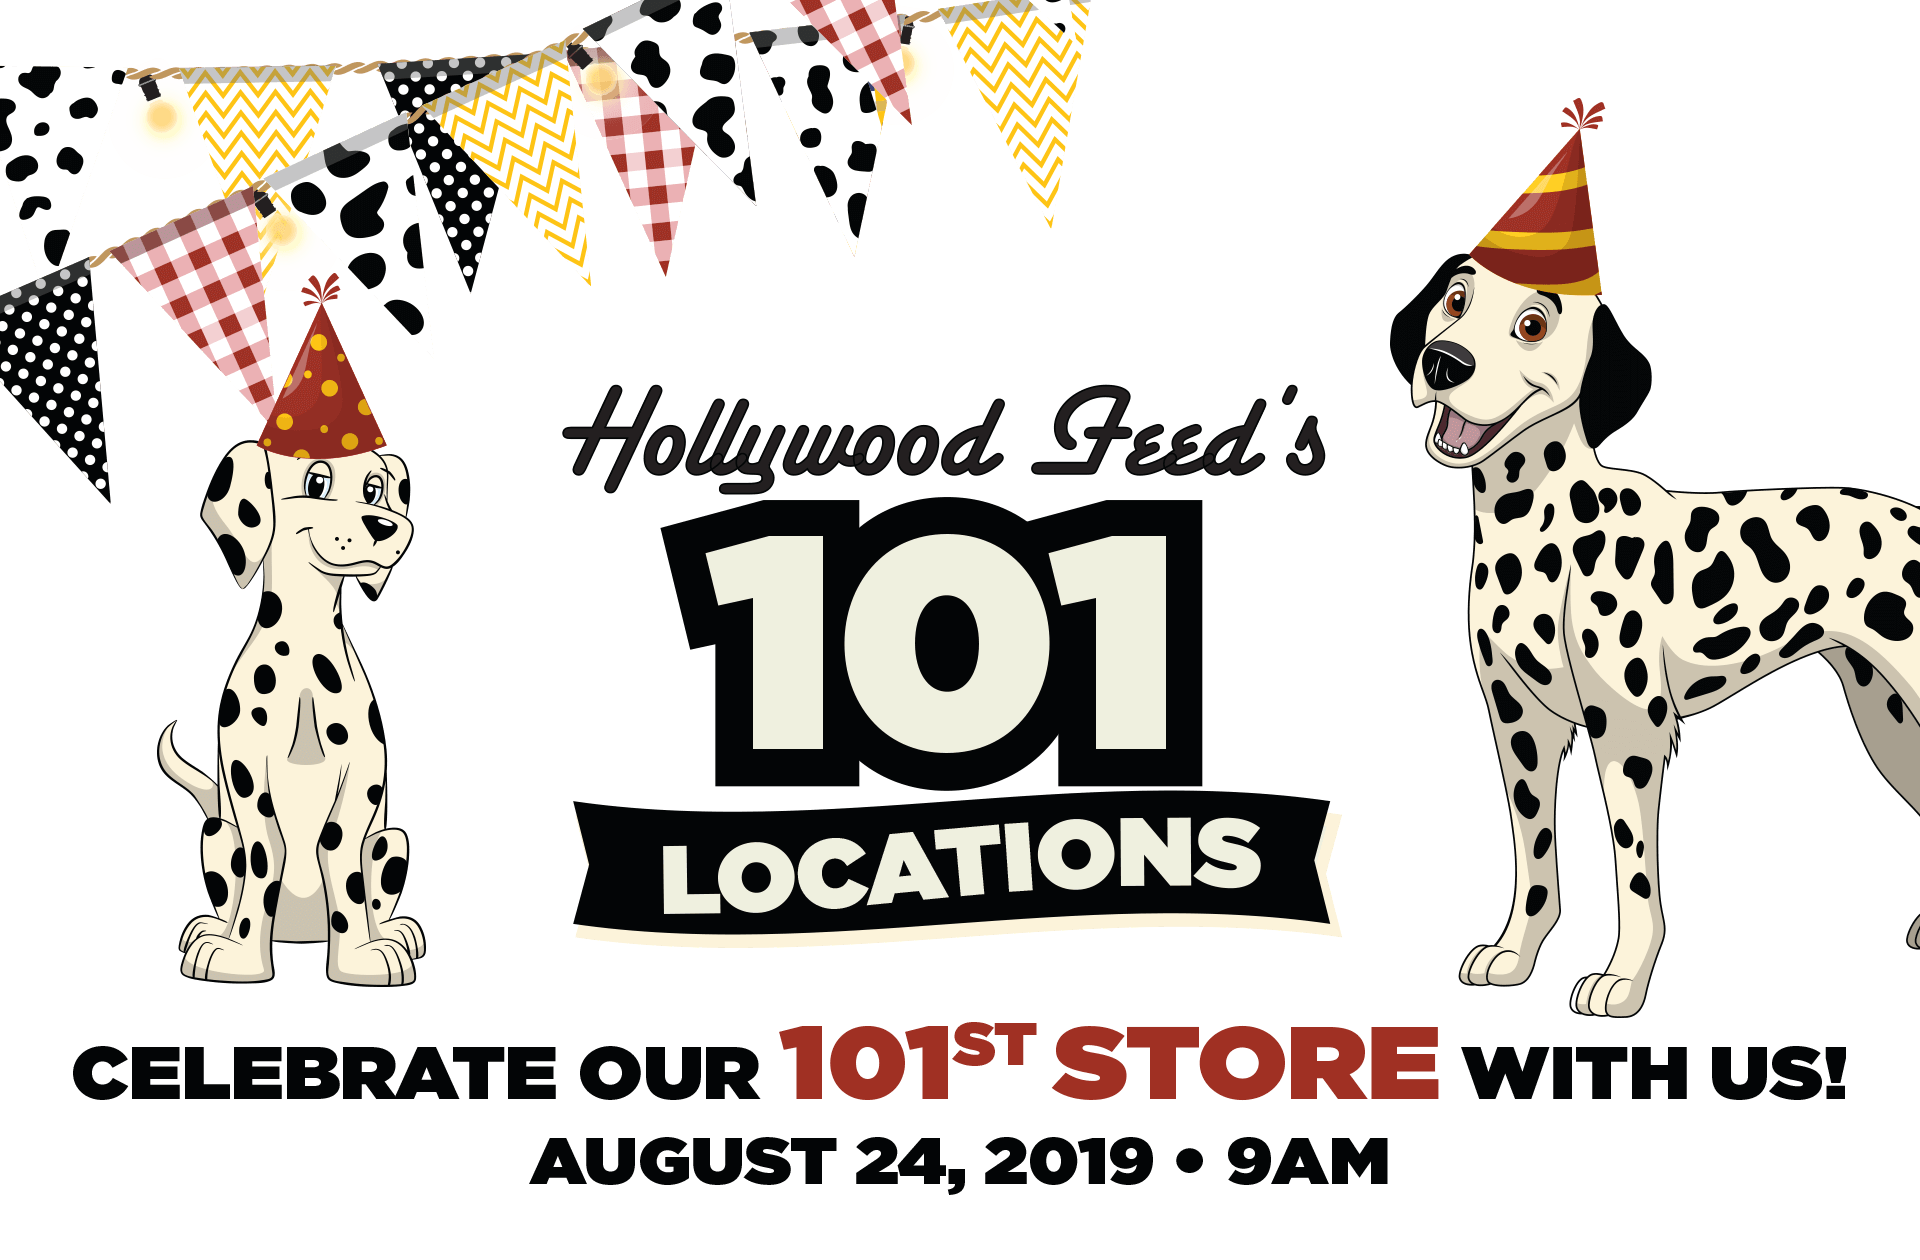 Celebrate our 101st Store with Us!